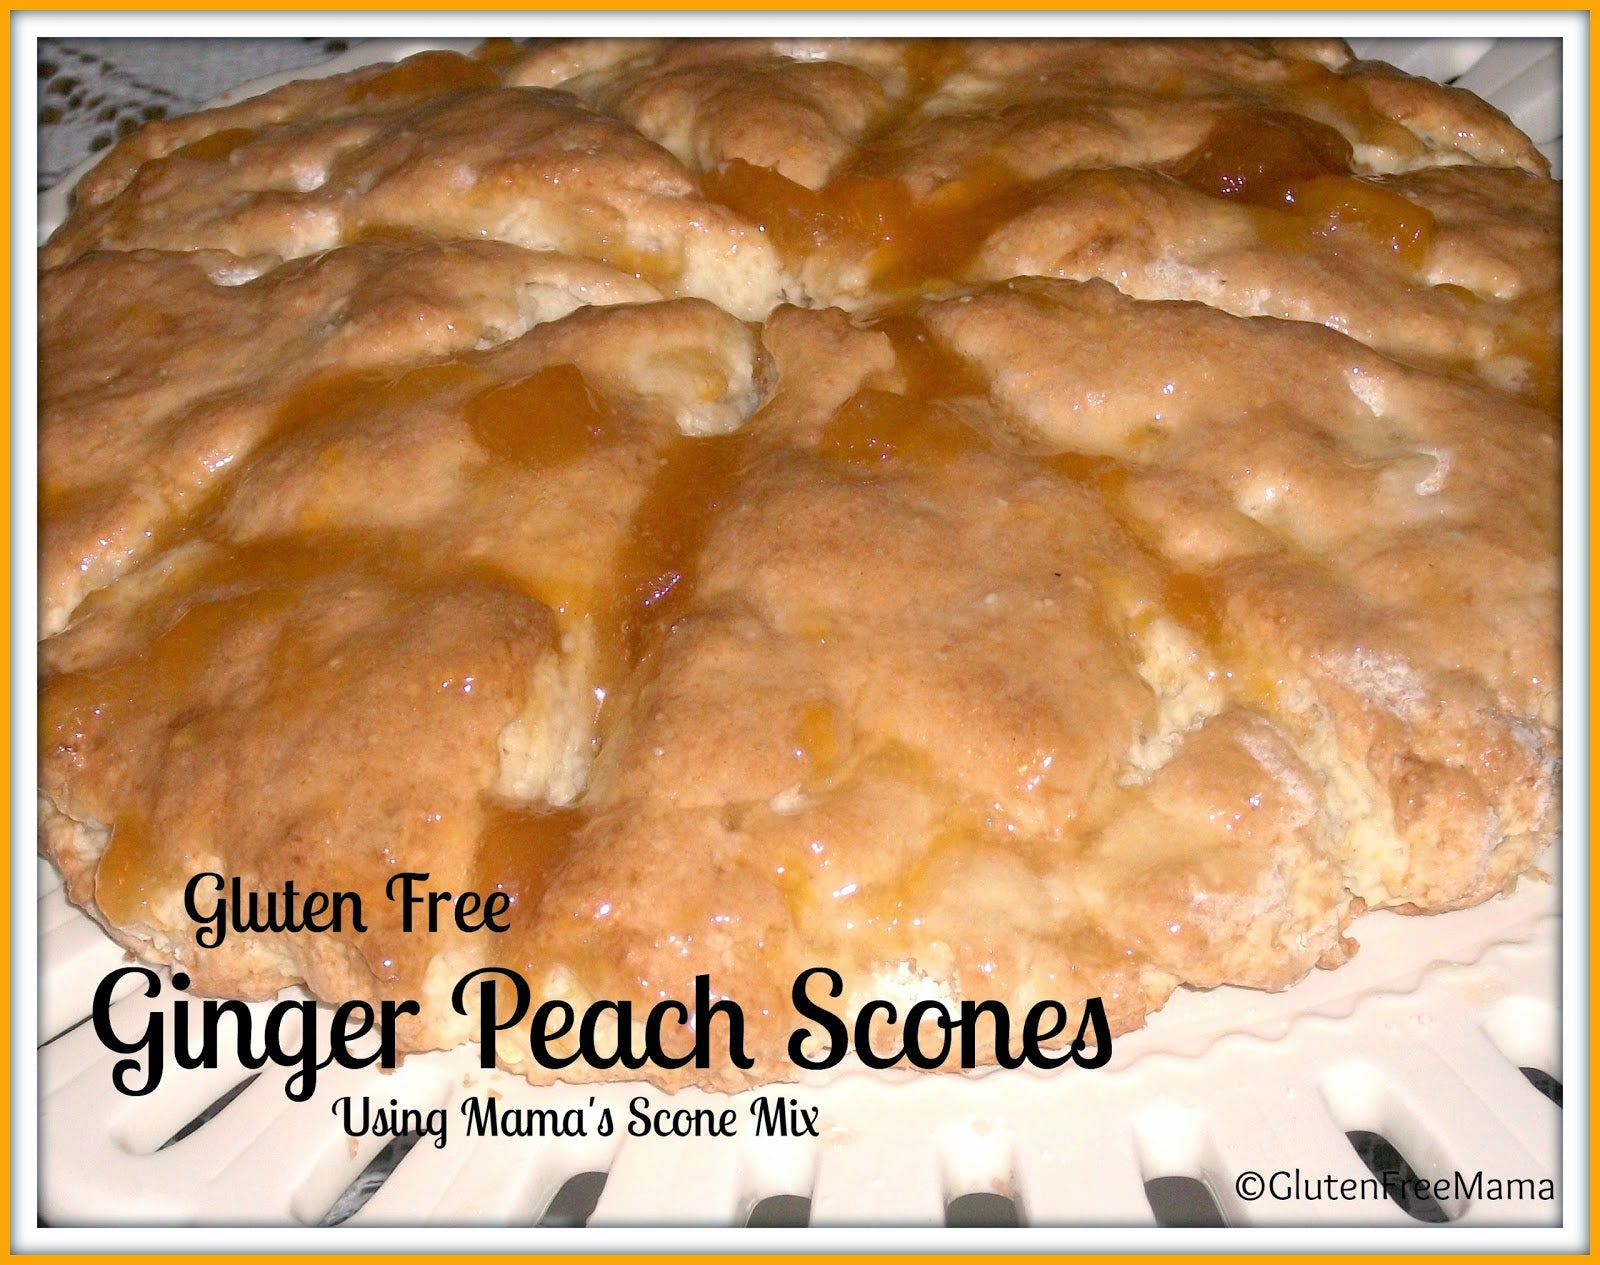 Mama's Scone Mix with Ginger Peach Scones